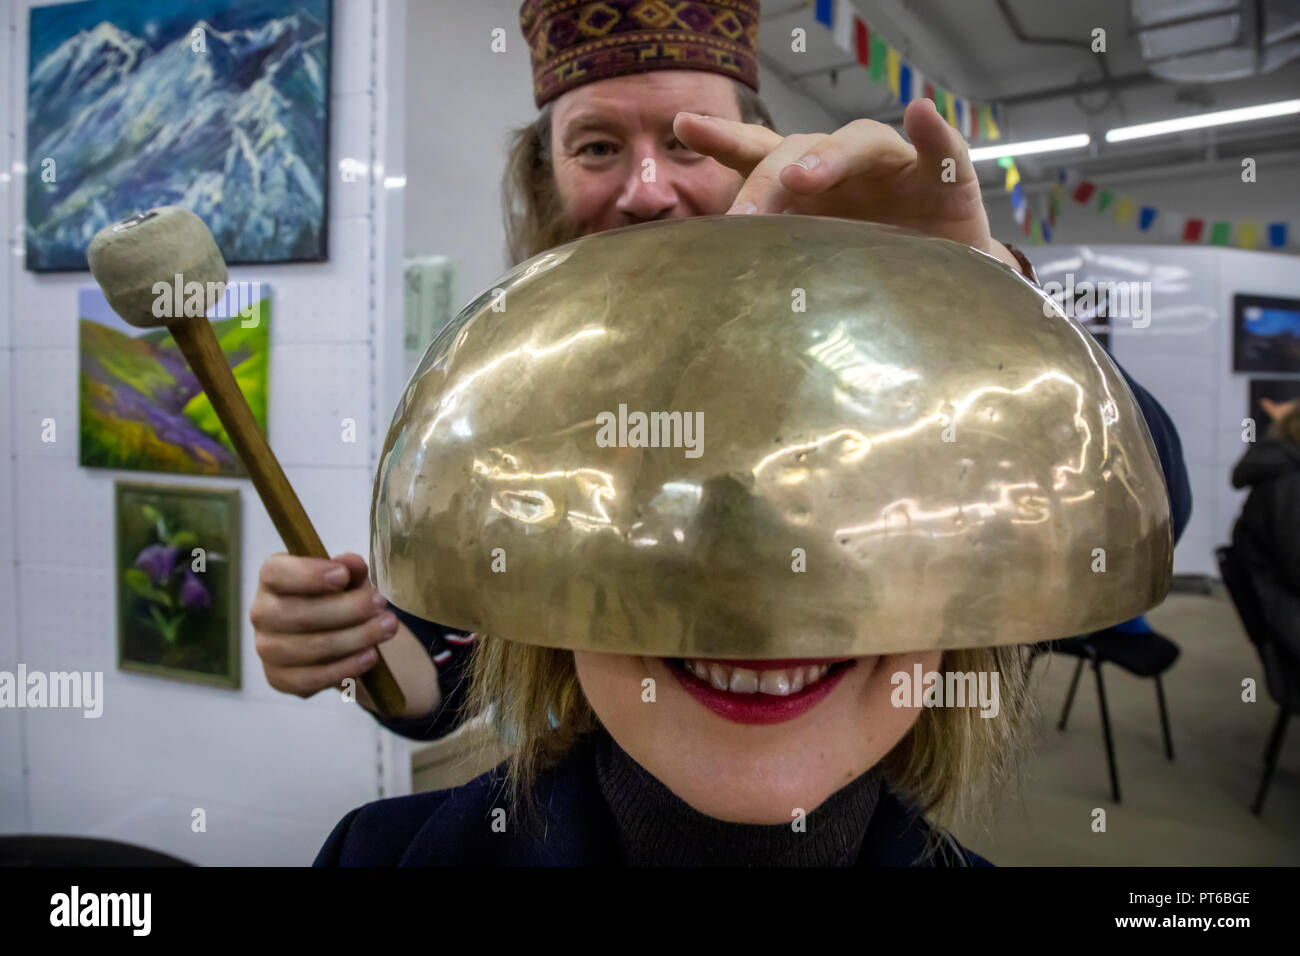 Using the Tibetan singing bowl during a sound therapy session at the Nepal Culture Festival in Moscow, Russia Stock Photo